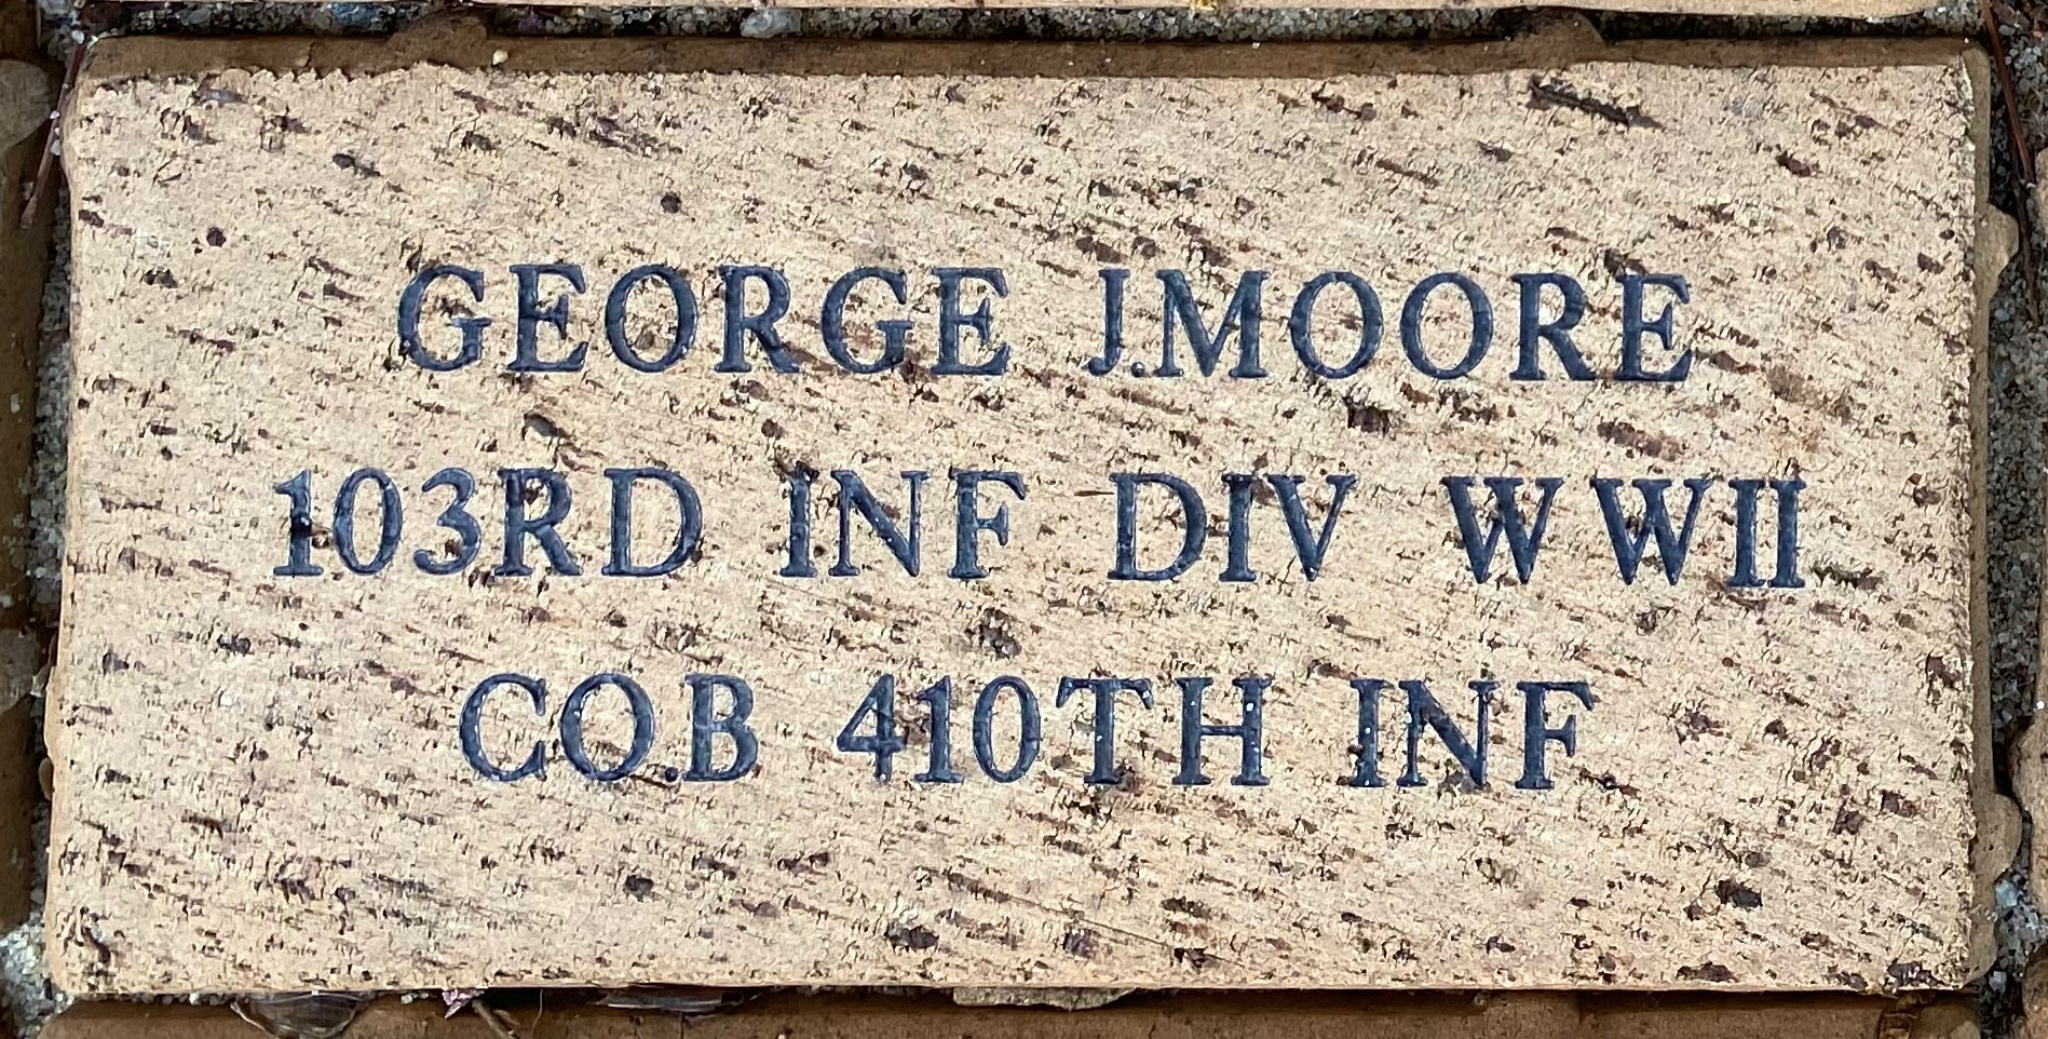 GEORGE J. MOORE 103RD INF DIV WWII CO.B 410TH INF